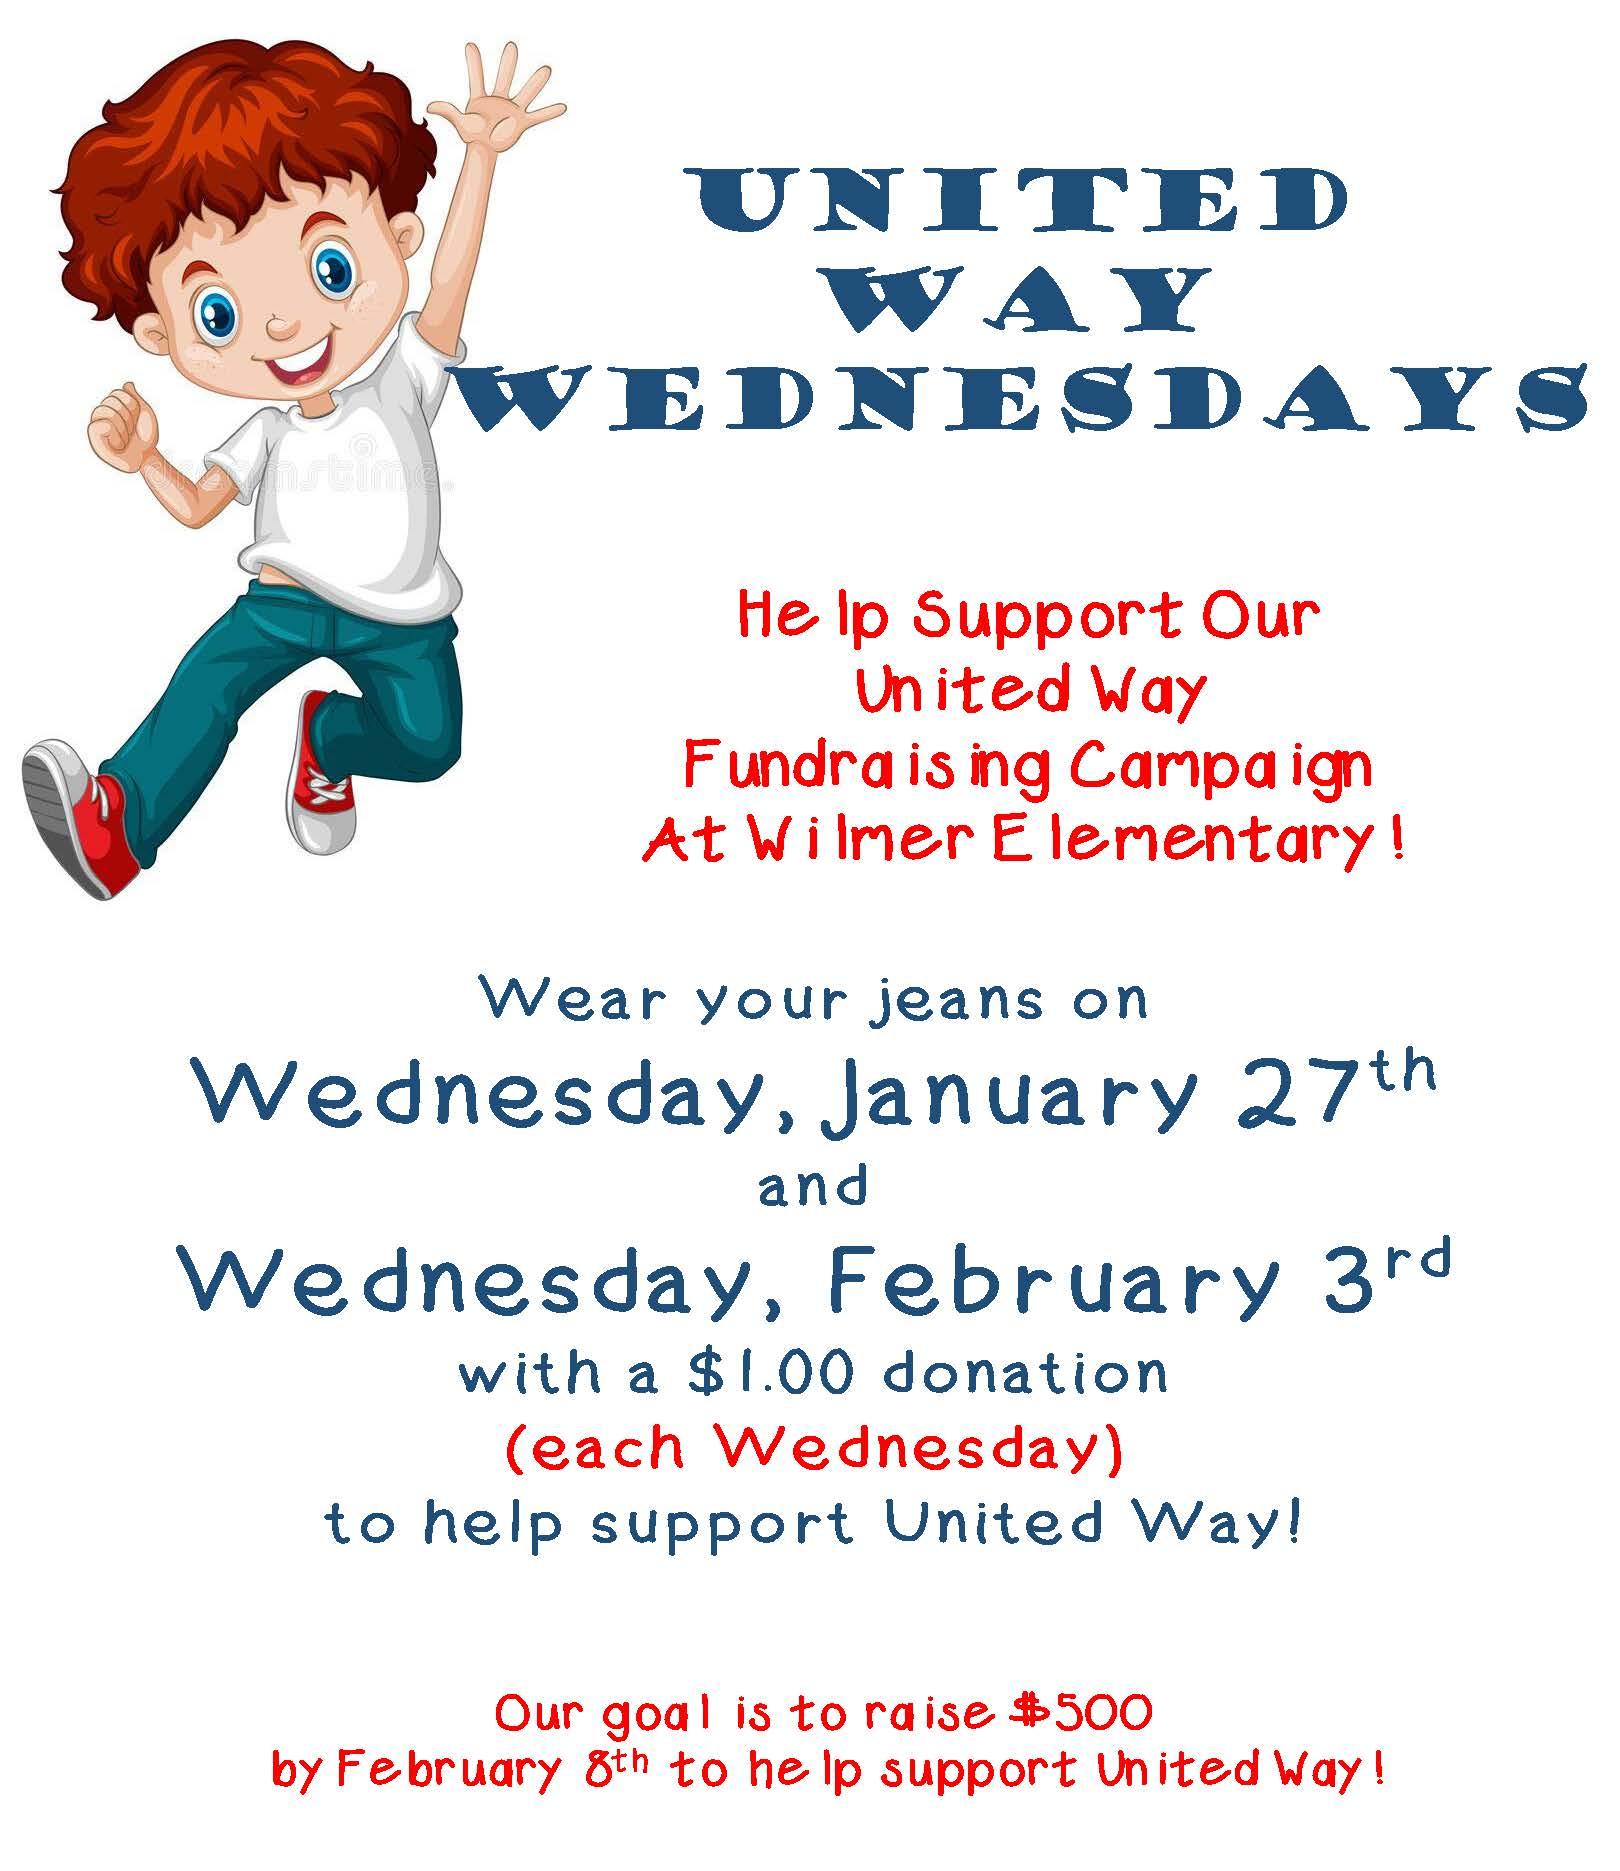 Help support United Way